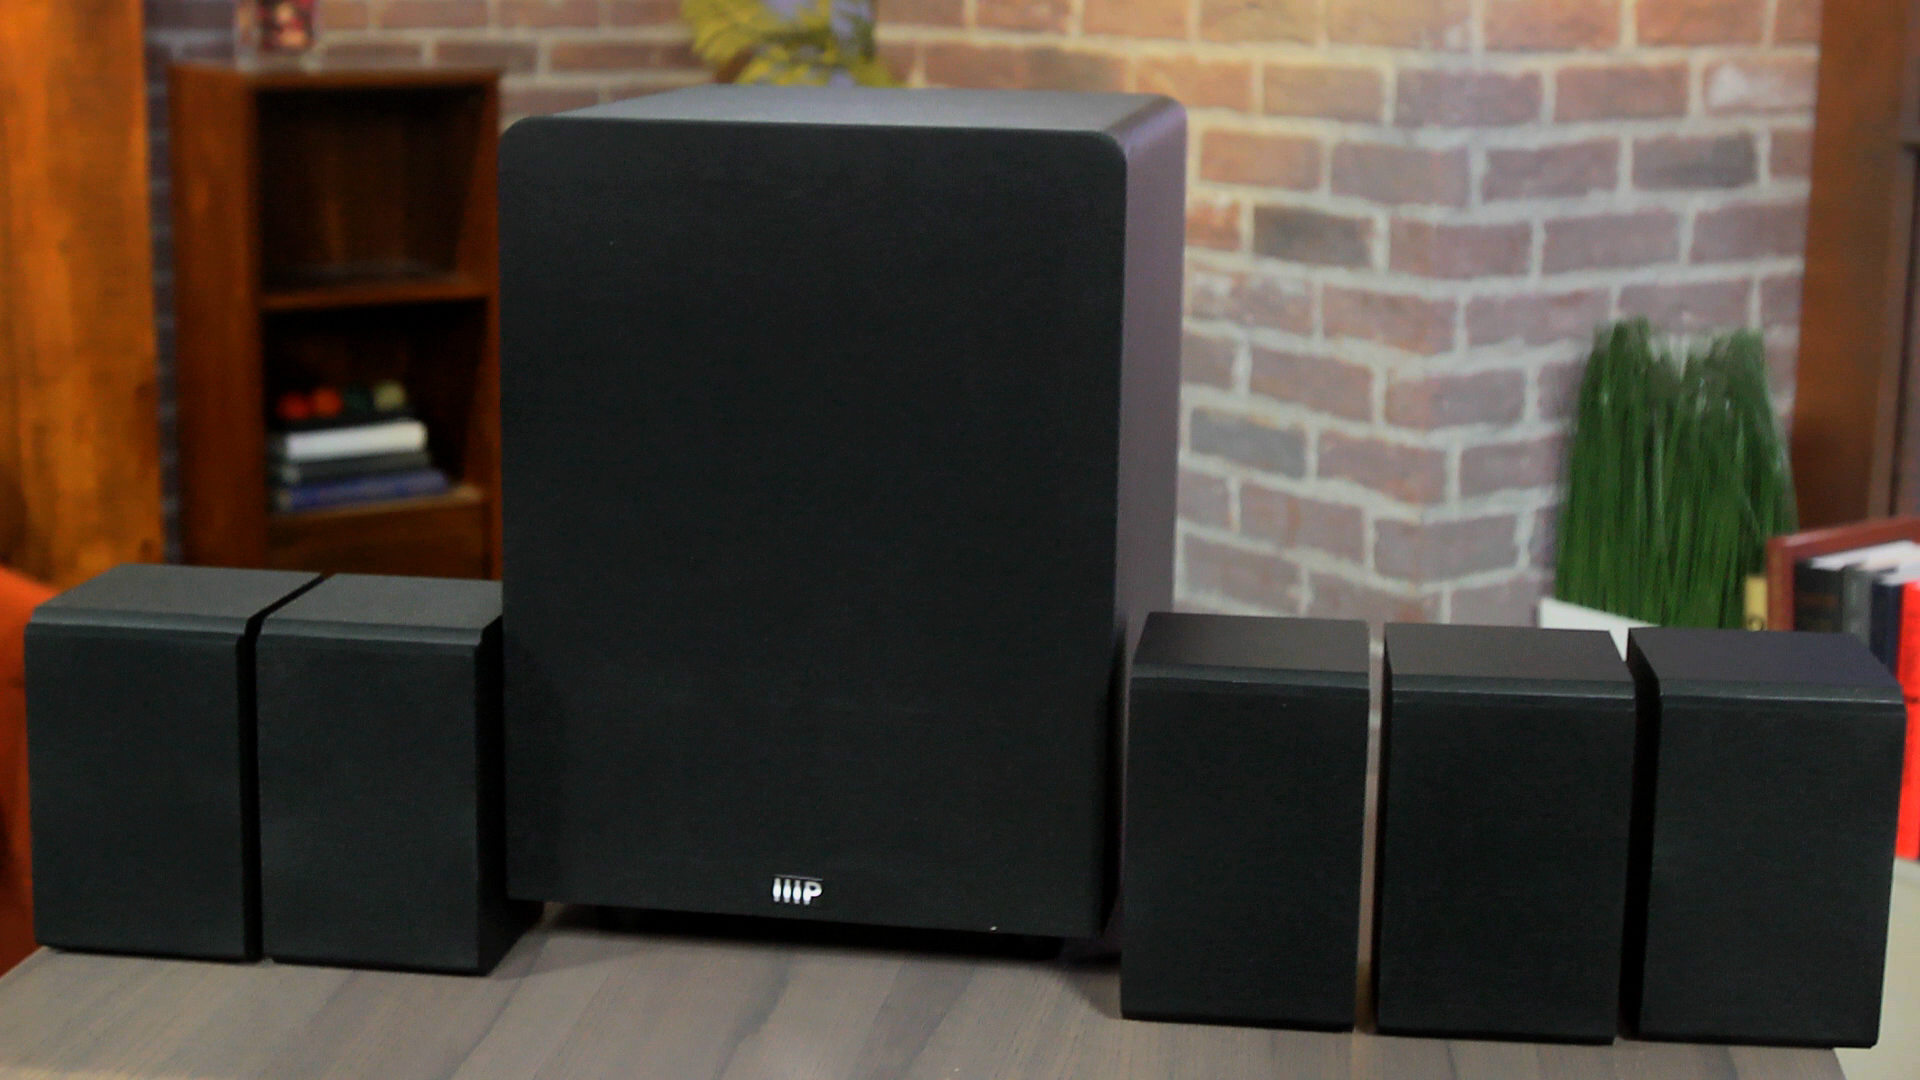 Video: Monoprice 13773 speakers say yes to movies, no to music